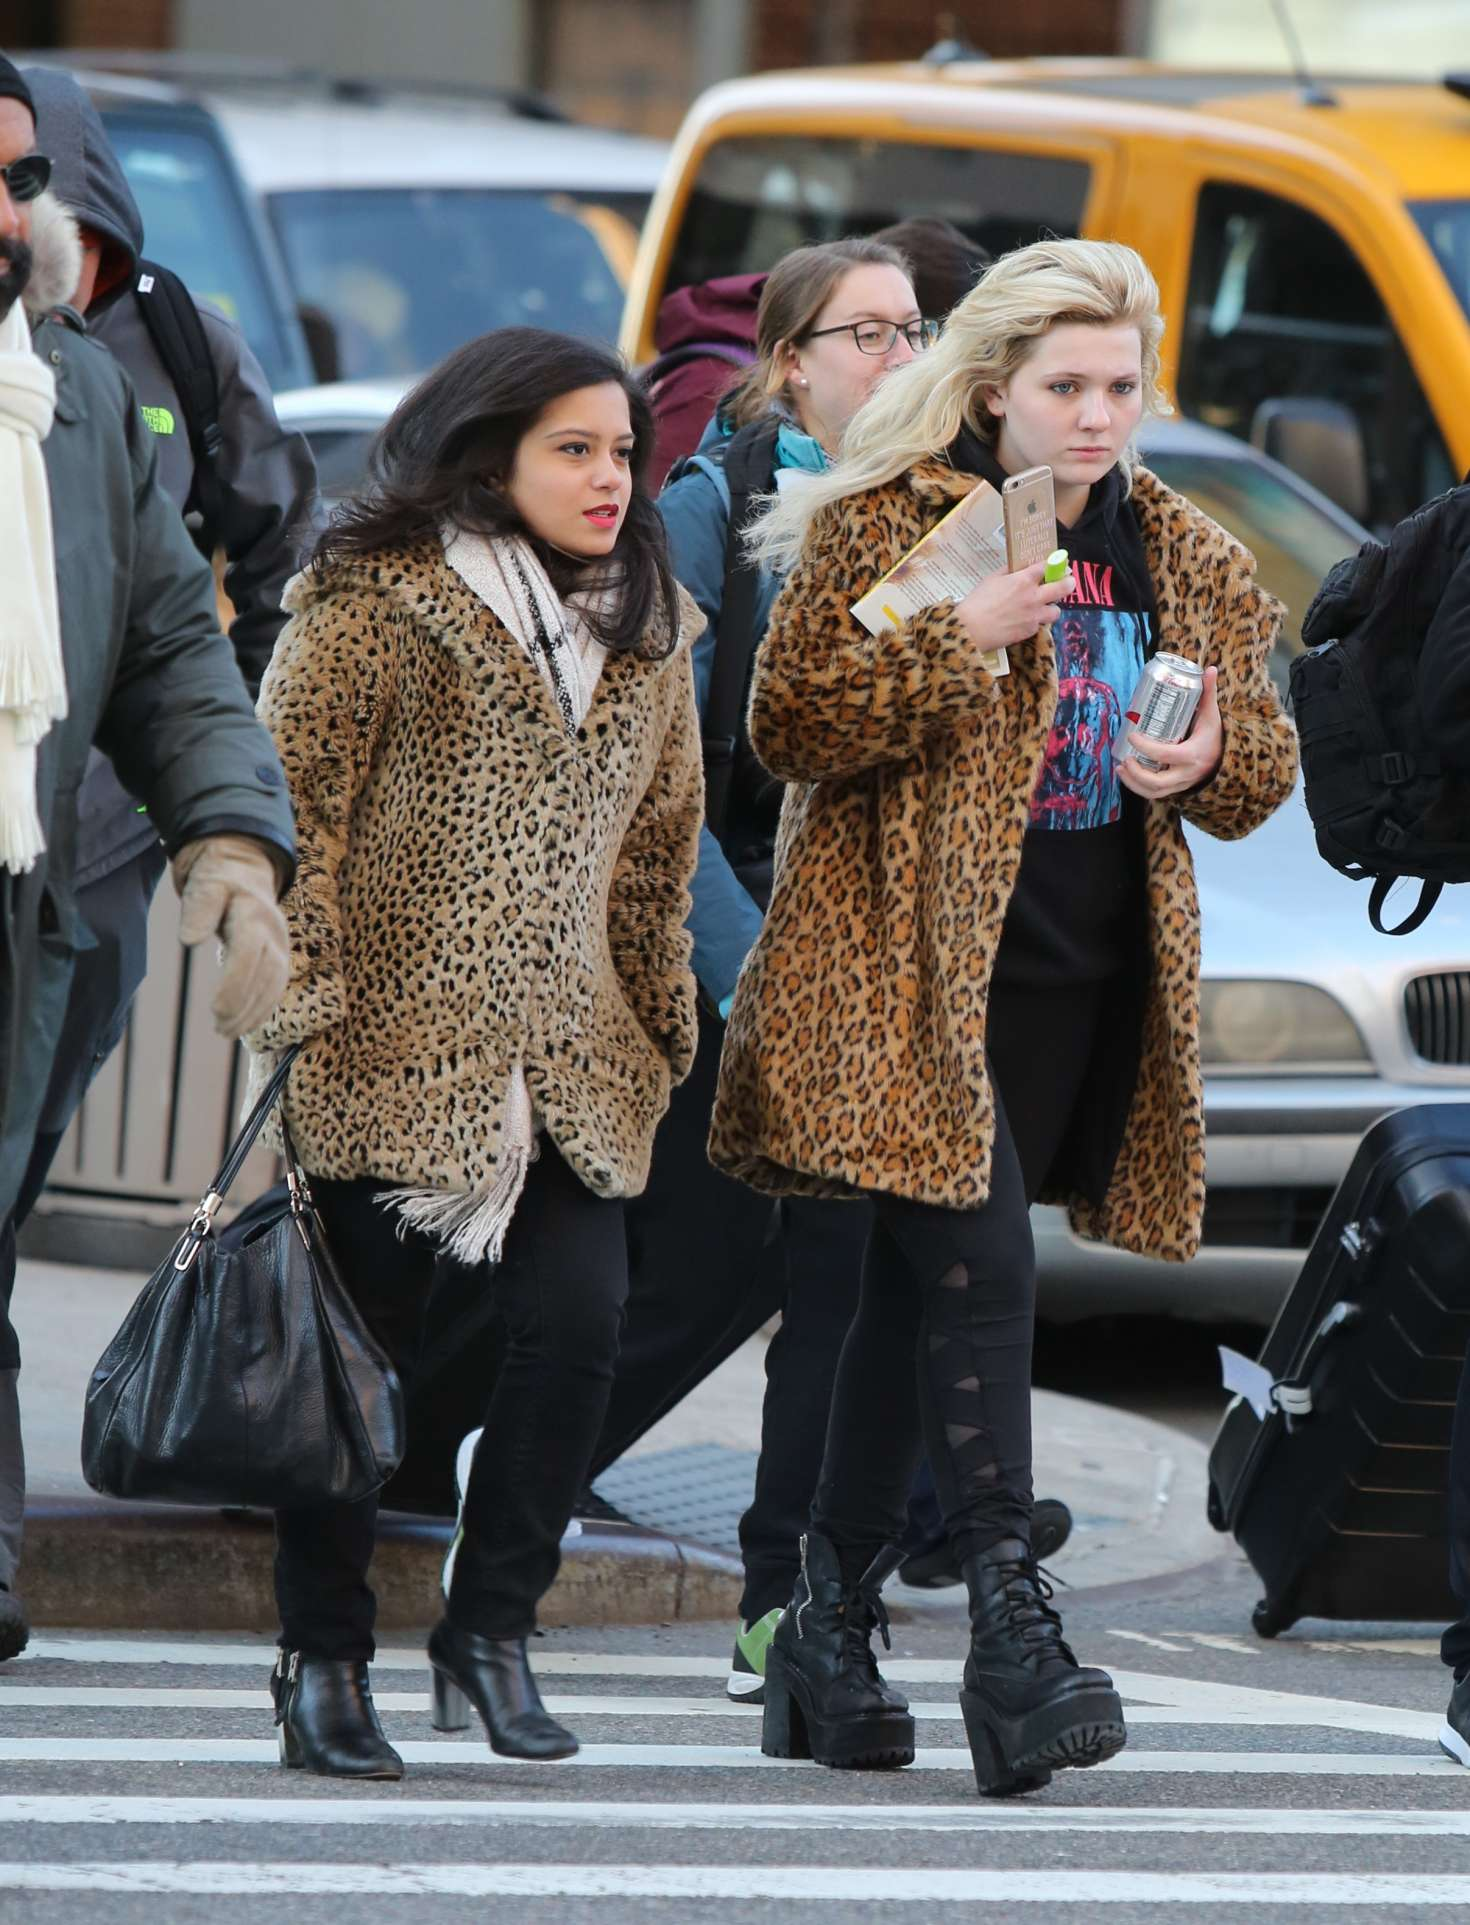 Abigail Breslin 2017 : Abigail Breslin in Fur Coat out in NYC -12